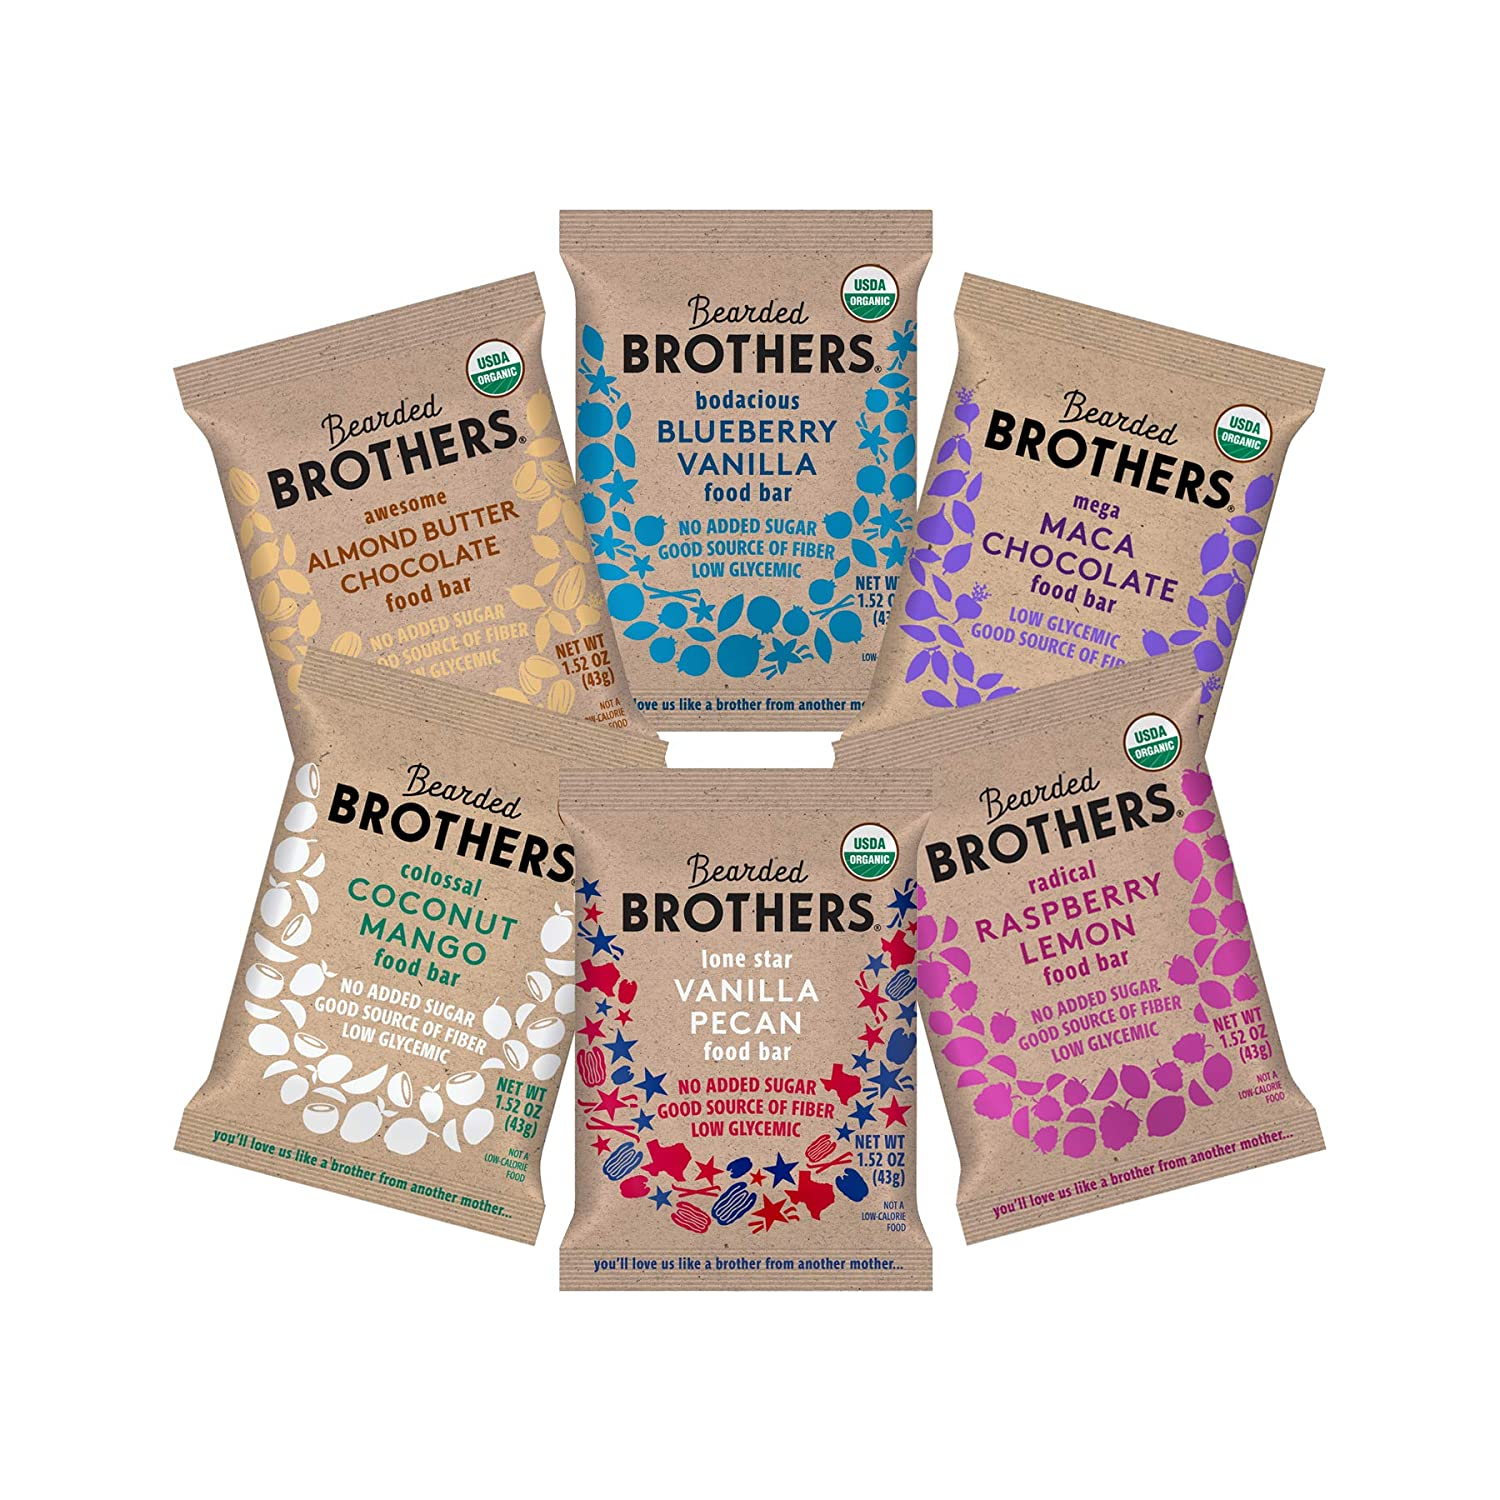 Bearded Brothers Vegan Organic Energy Bar   Gluten Free, Paleo and Whole 30   Soy Free, Non GMO, Low Glycemic, Packed with Protein, Fiber + Whole Foods   6 Flavor Variety Pack   12 Pack